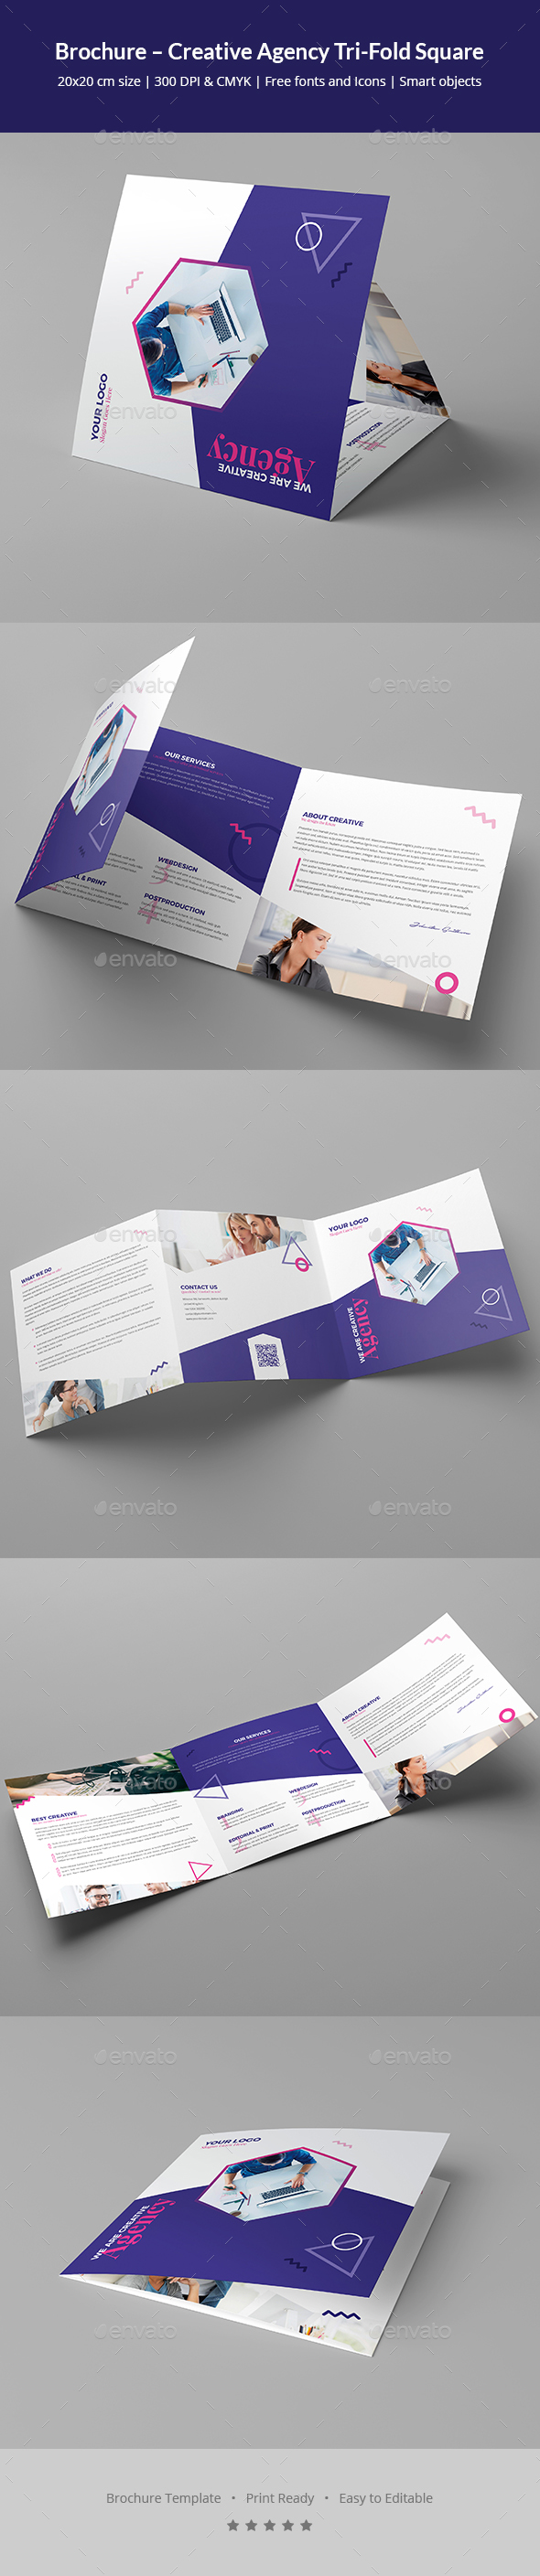 Brochure – Creative Agency Tri-Fold Square